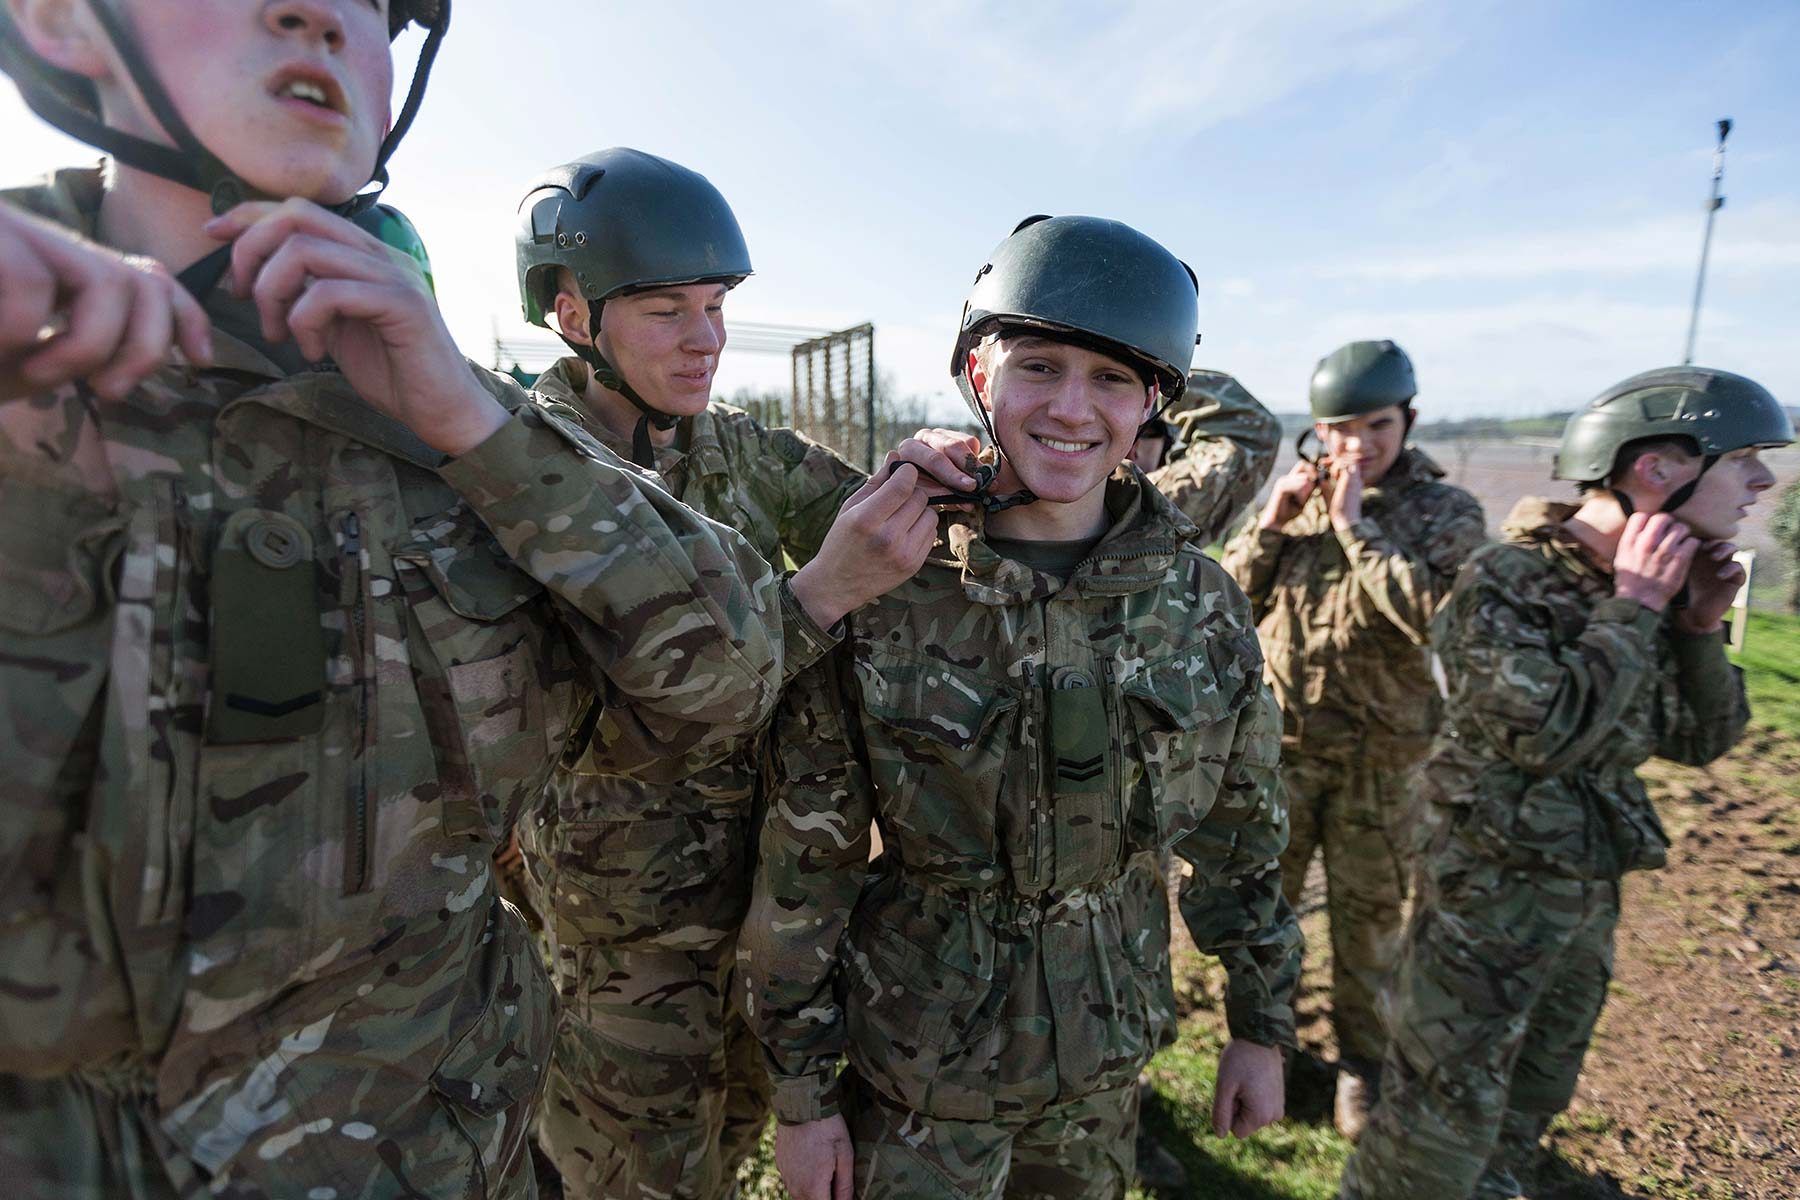 Royal Marine cadets in camouflage for outdoor activity